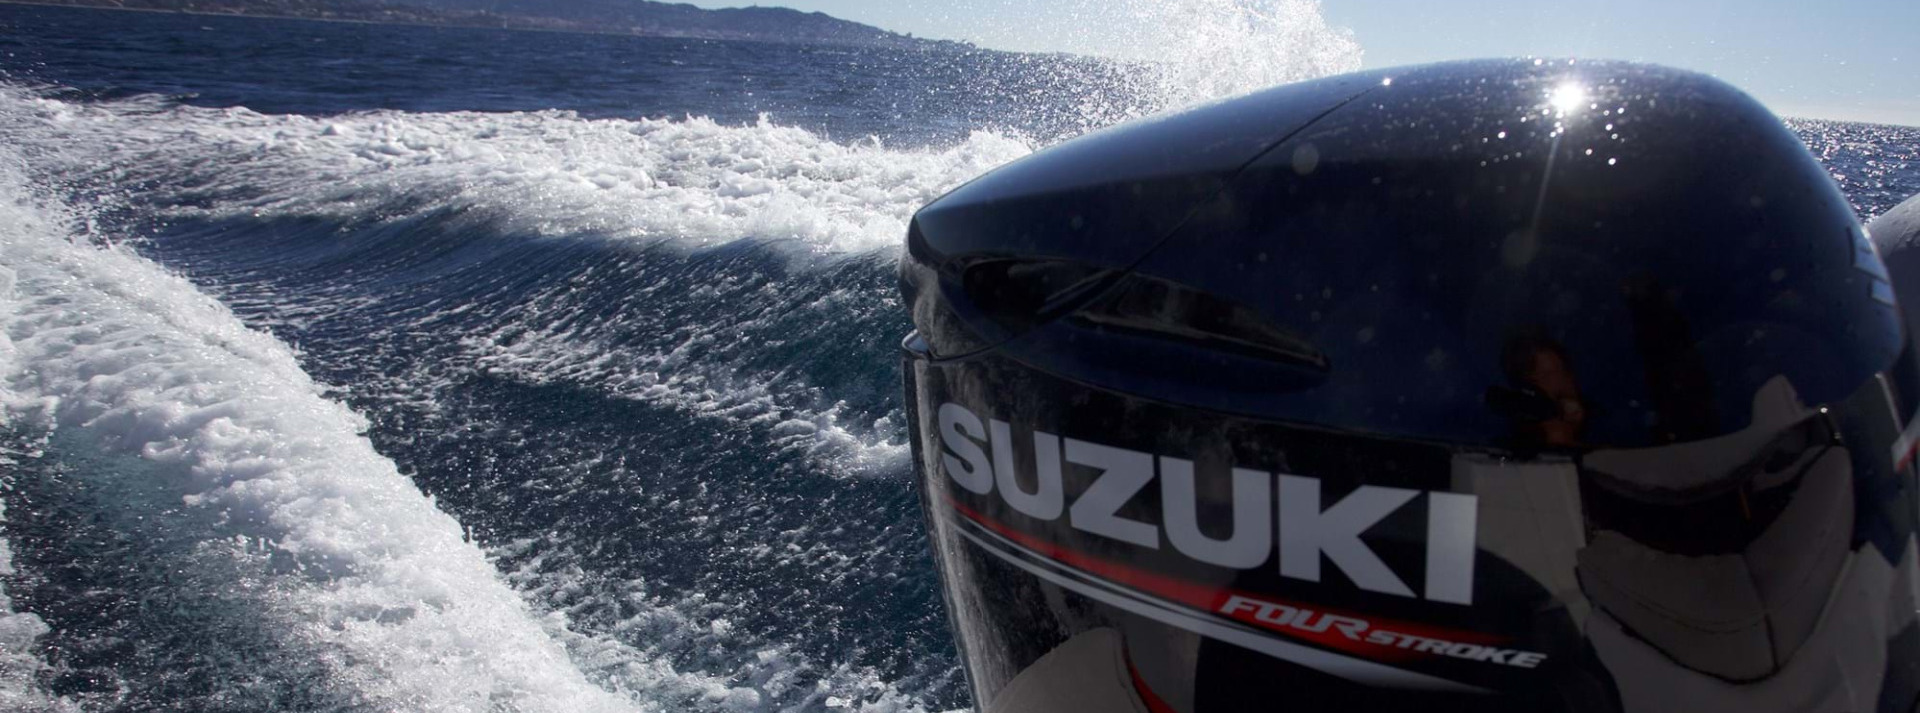 Suzuki Marine Outboard DF250 V6 50 YEARS EXPERIENCE from Winsor Marine